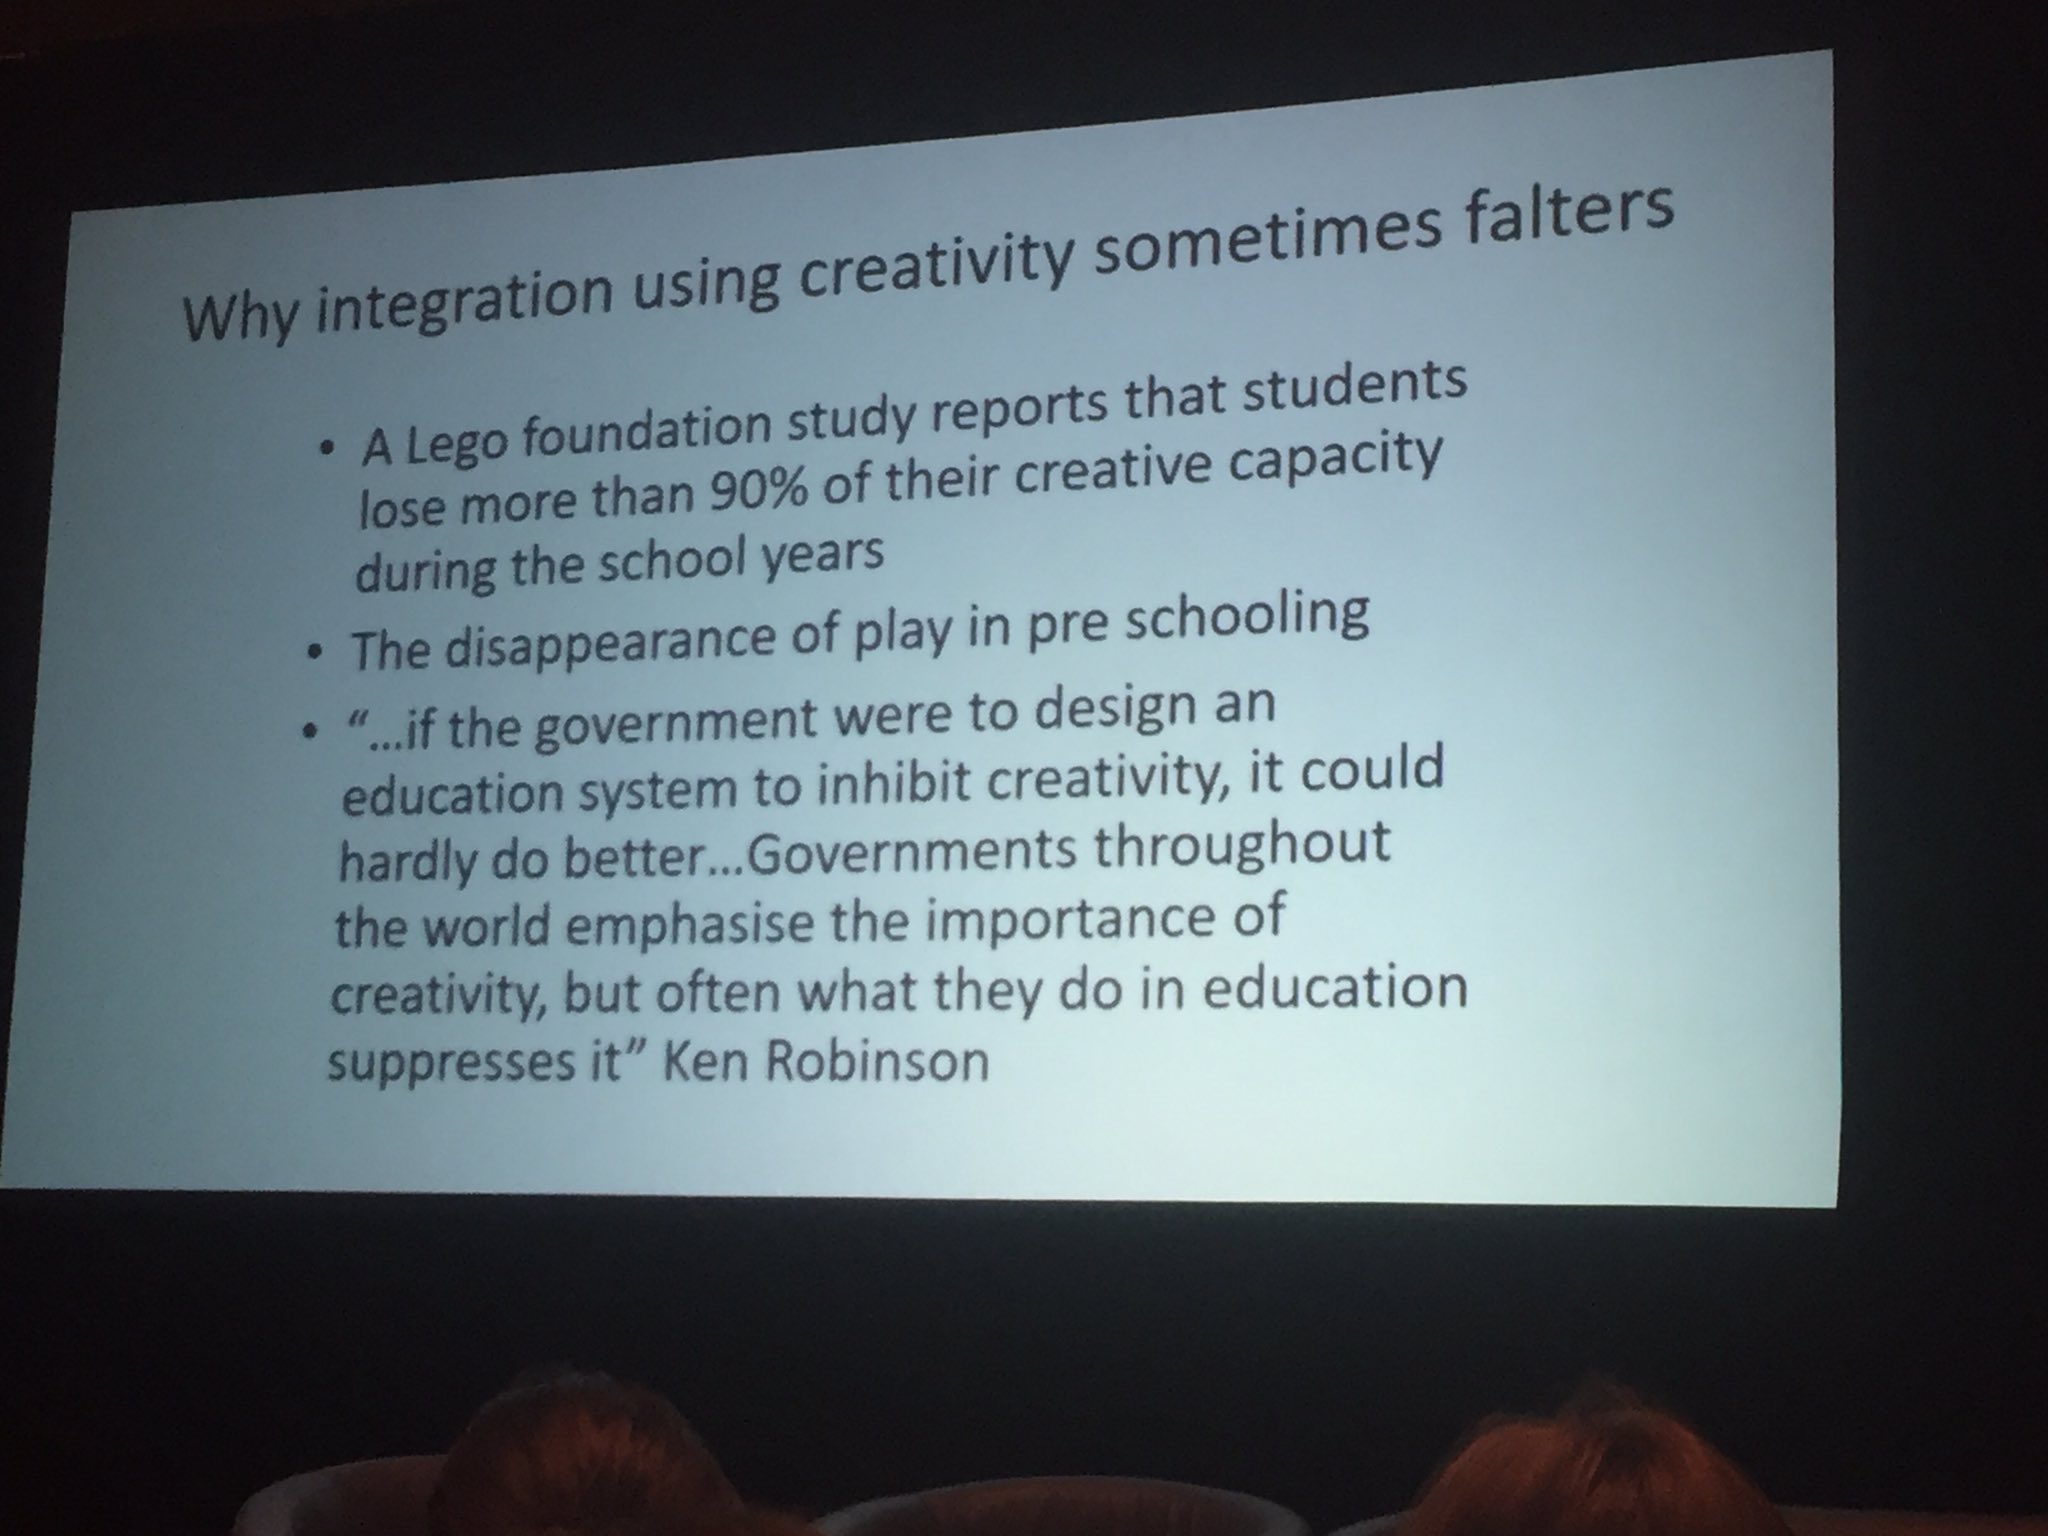 Why integration using creativity sometimes falters: slide from Michael Anderson  #acsasym https://t.co/Y5N7TSkLR5